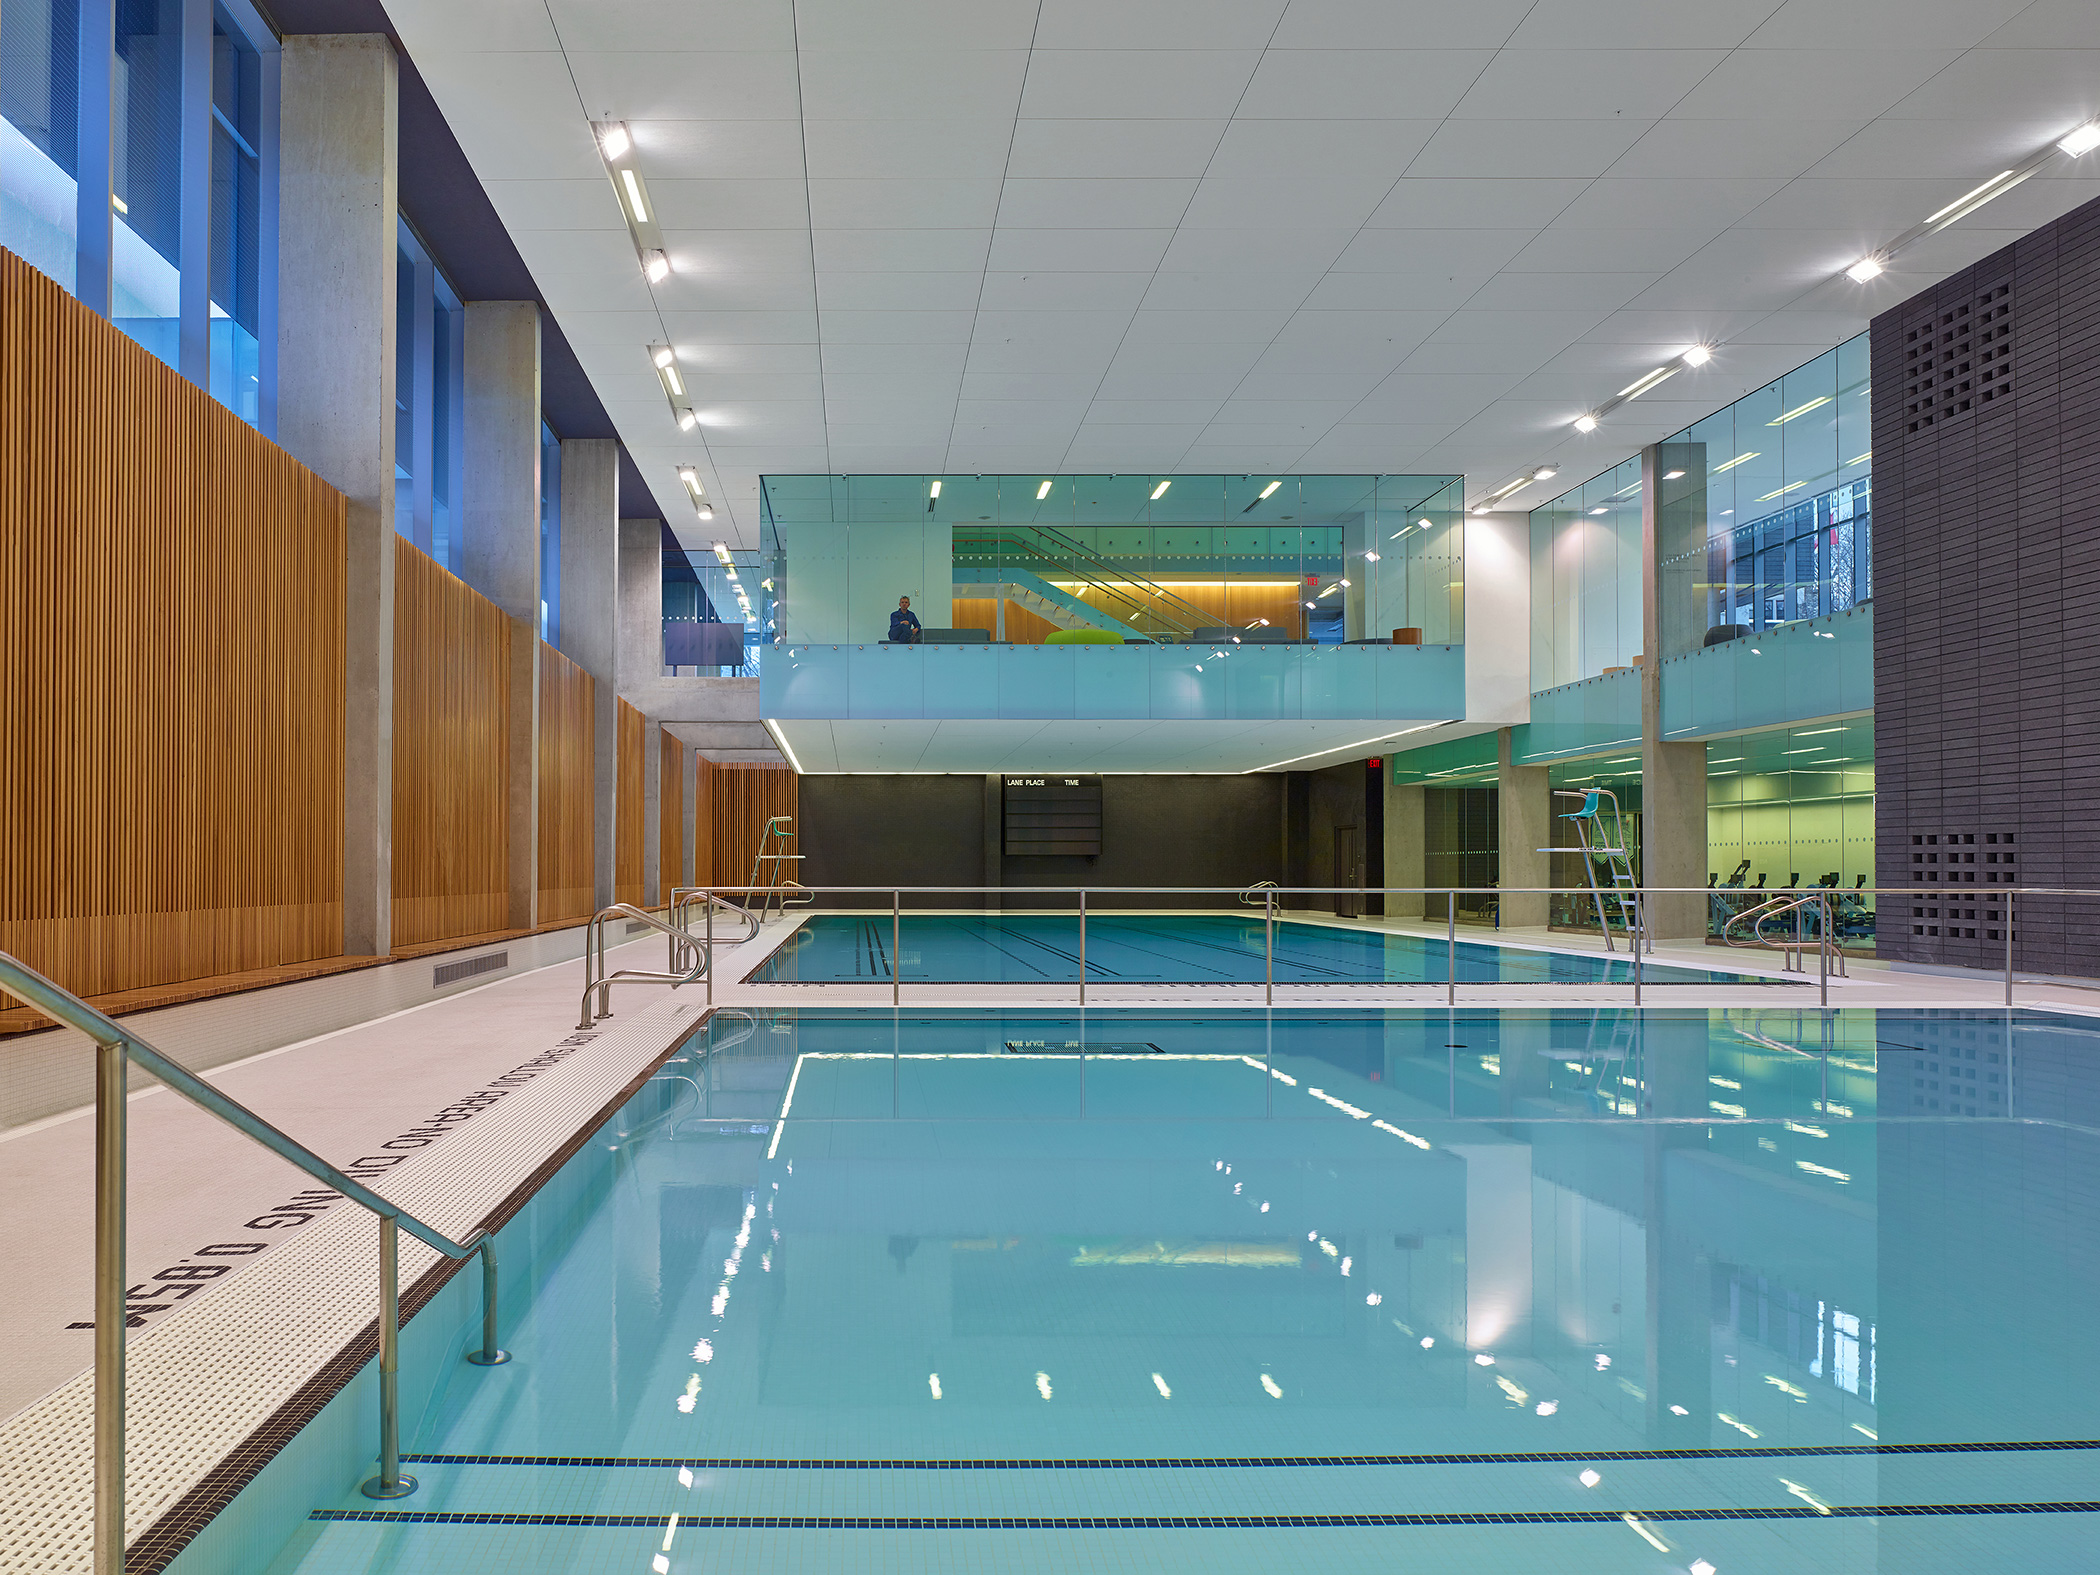 Branksome Hall Athletics & Wellness Centre Natatorium. Photo: Shai Gil